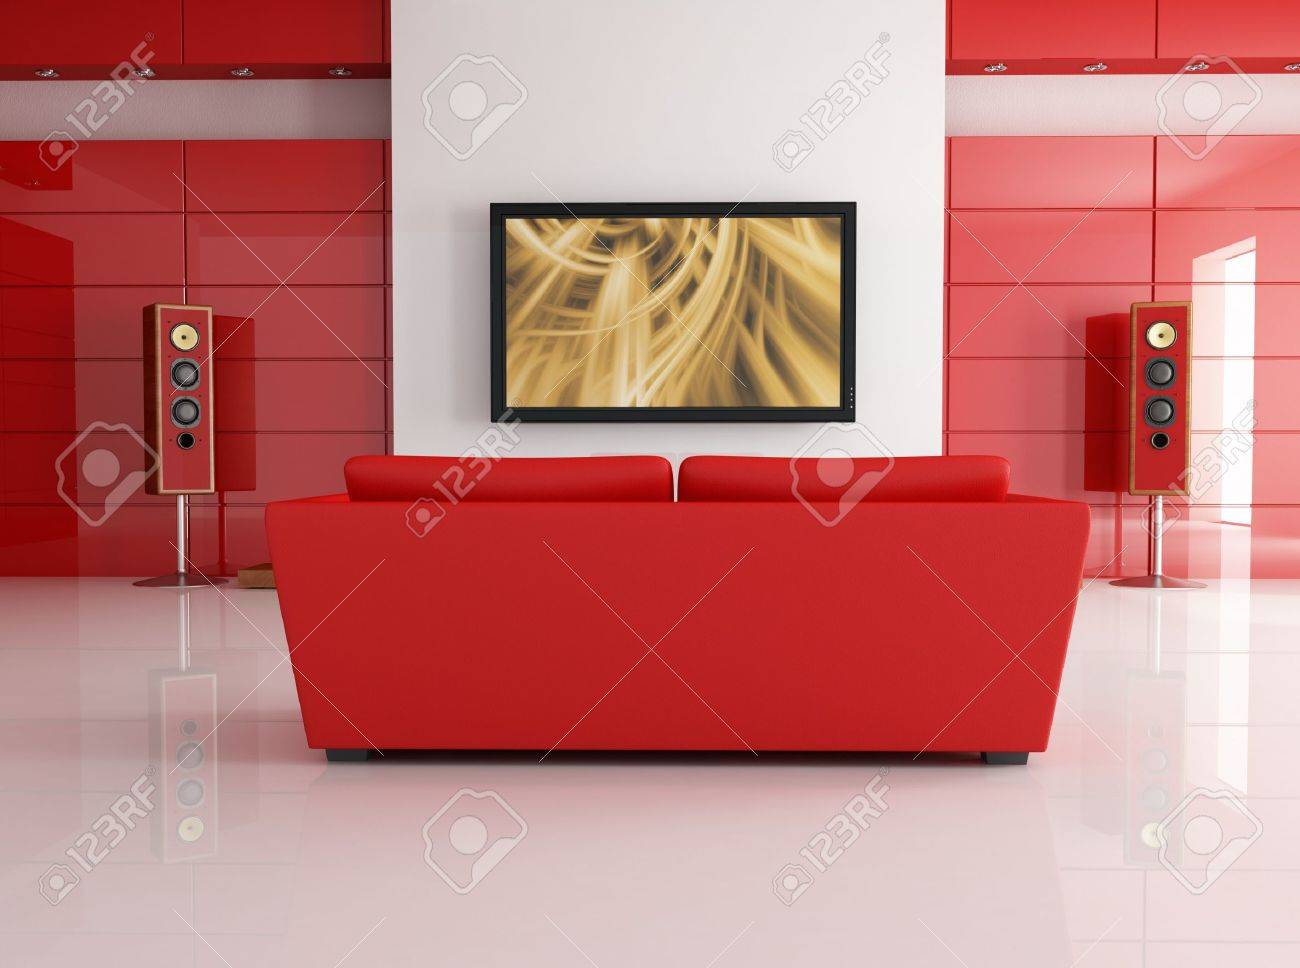 Red Leather Sofa In A Modern Living Room With Home Theatre System